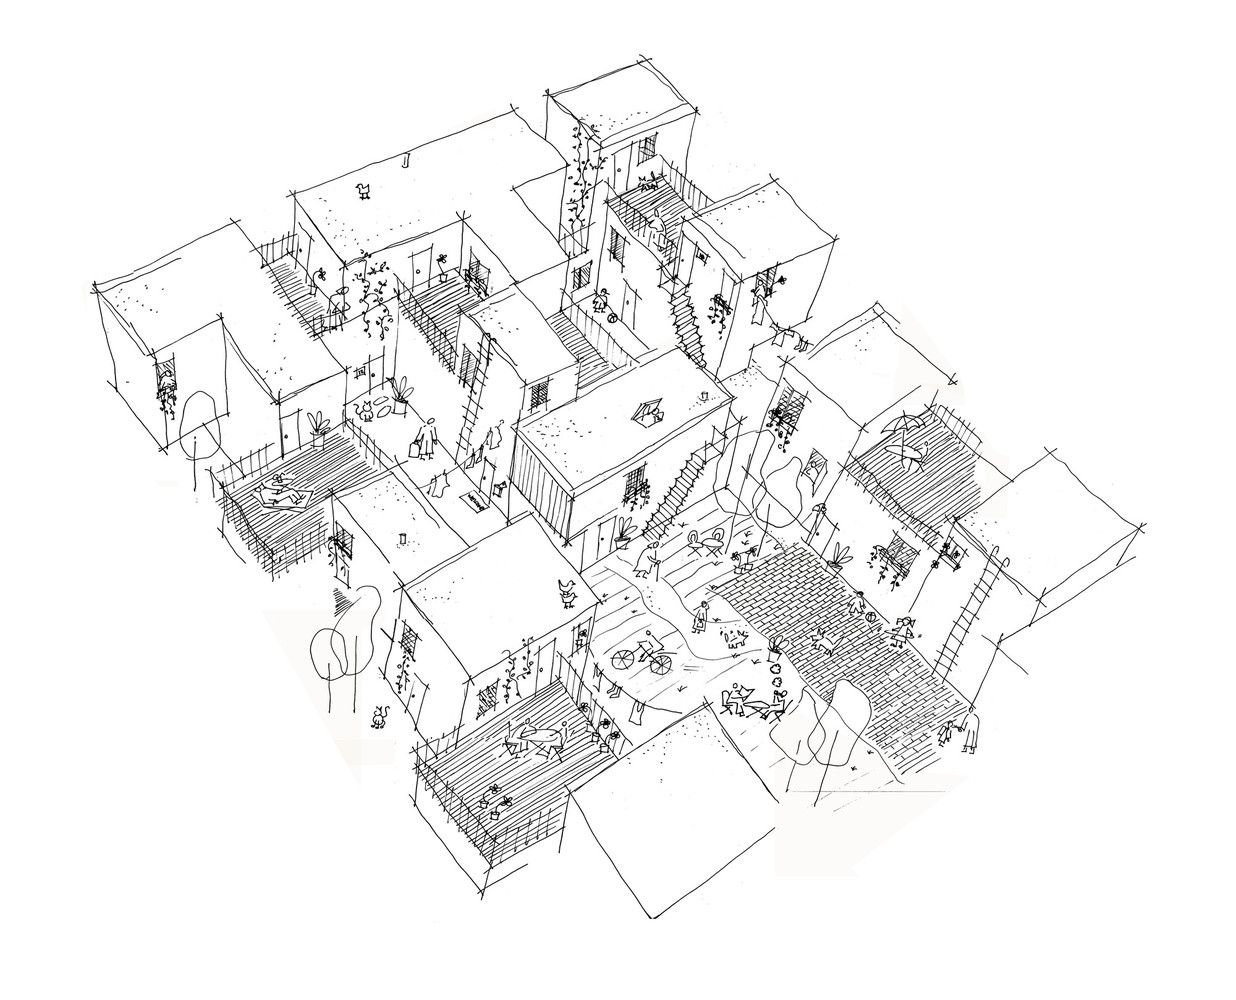 1236x1000 Gallery Of 5468796 Architecture's Response To The Guardian Over